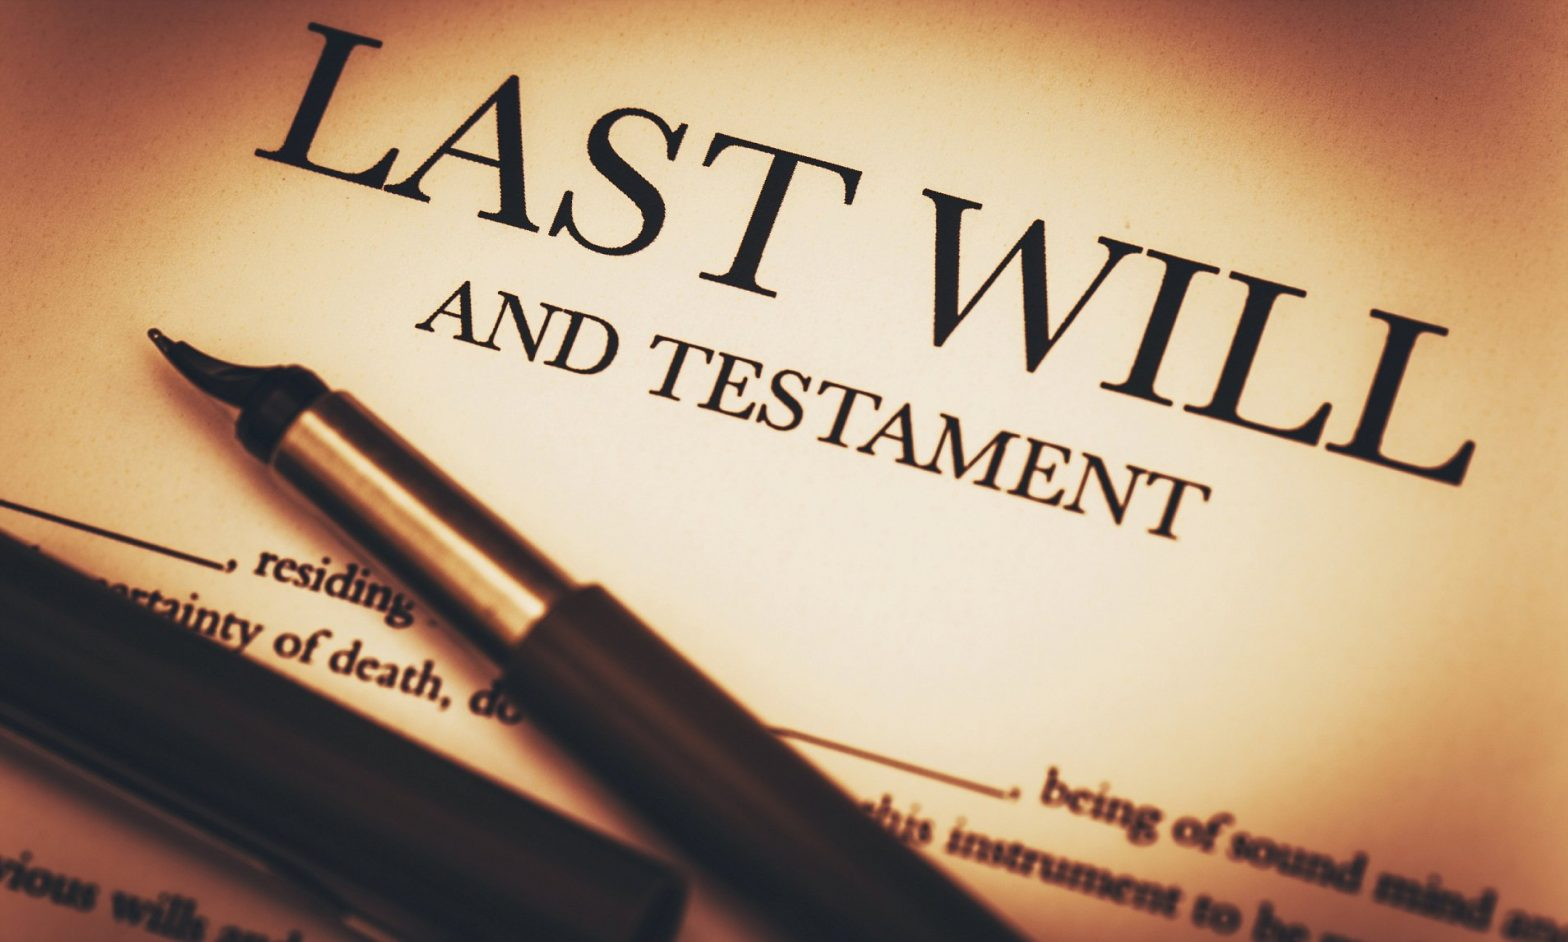 The importance of preparing wills